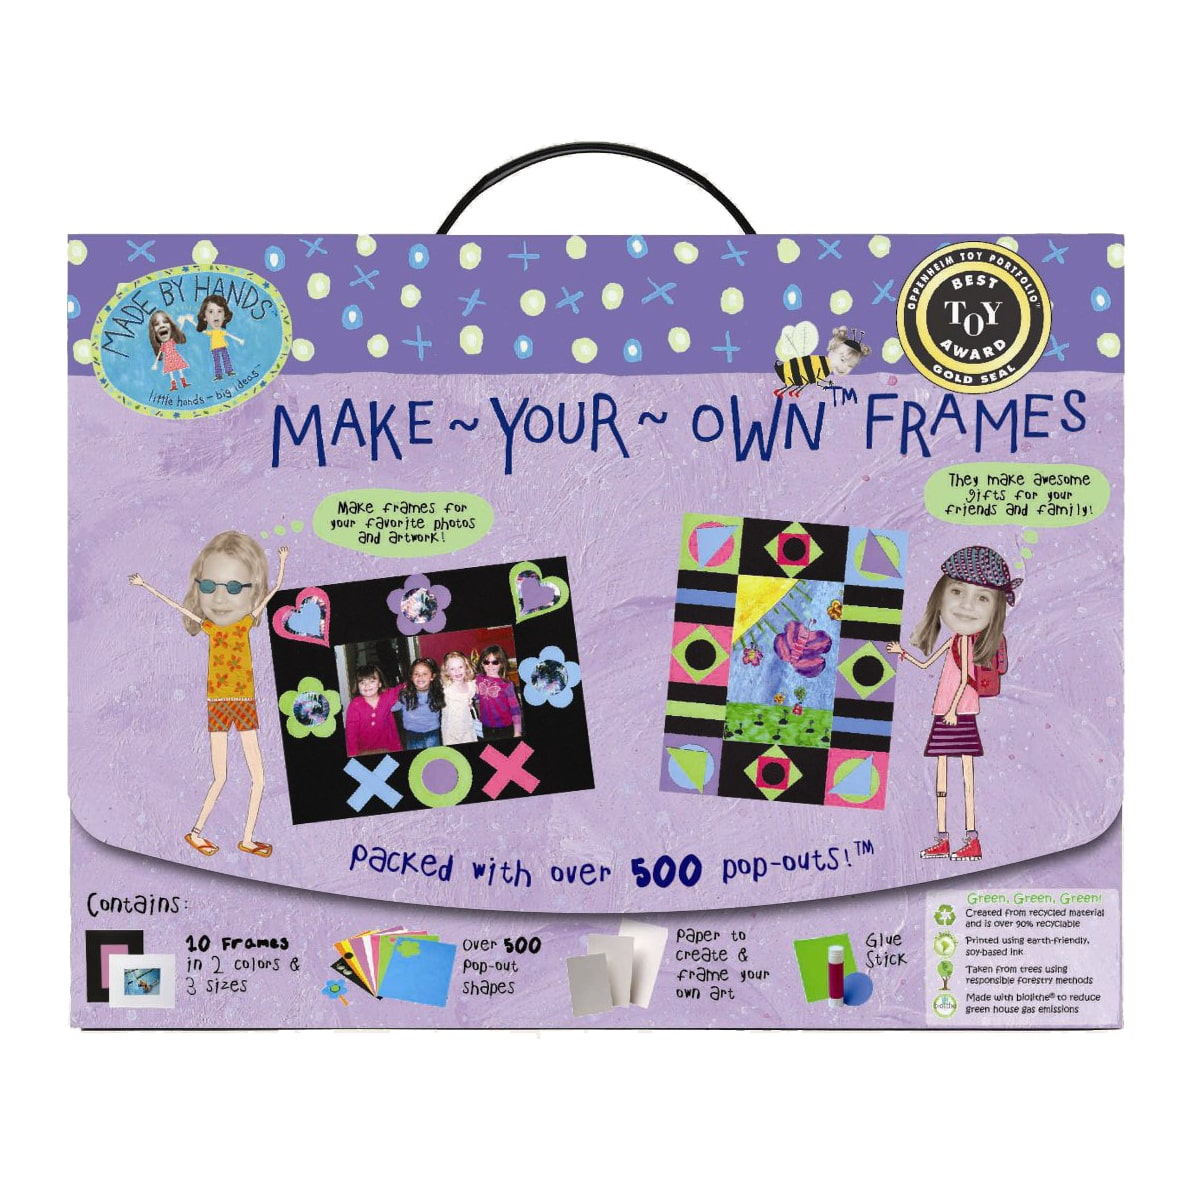 Make-Your-Own Frames - Walmart.com